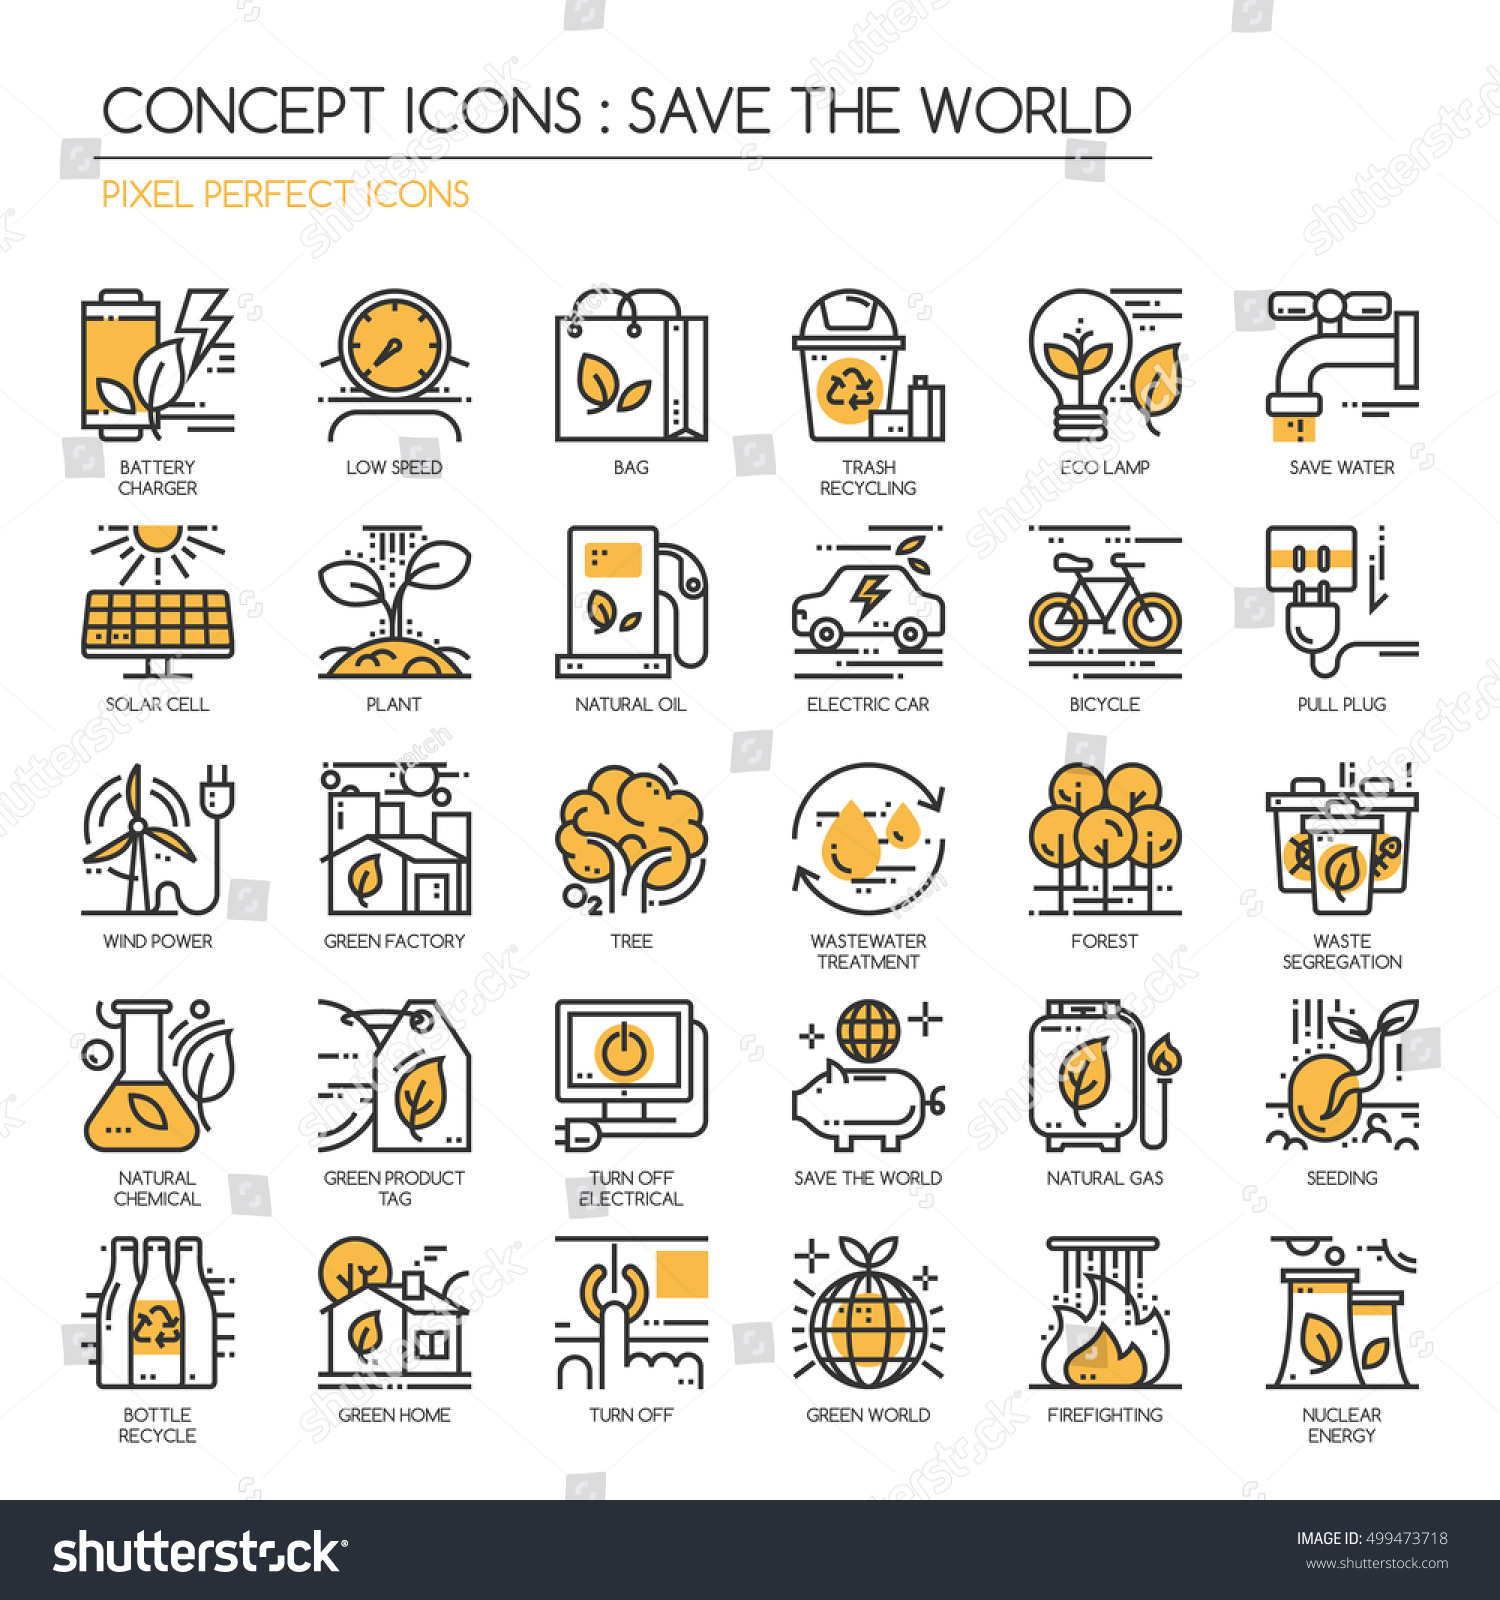 Save the world thin line icons set Pixel Perfect Icons